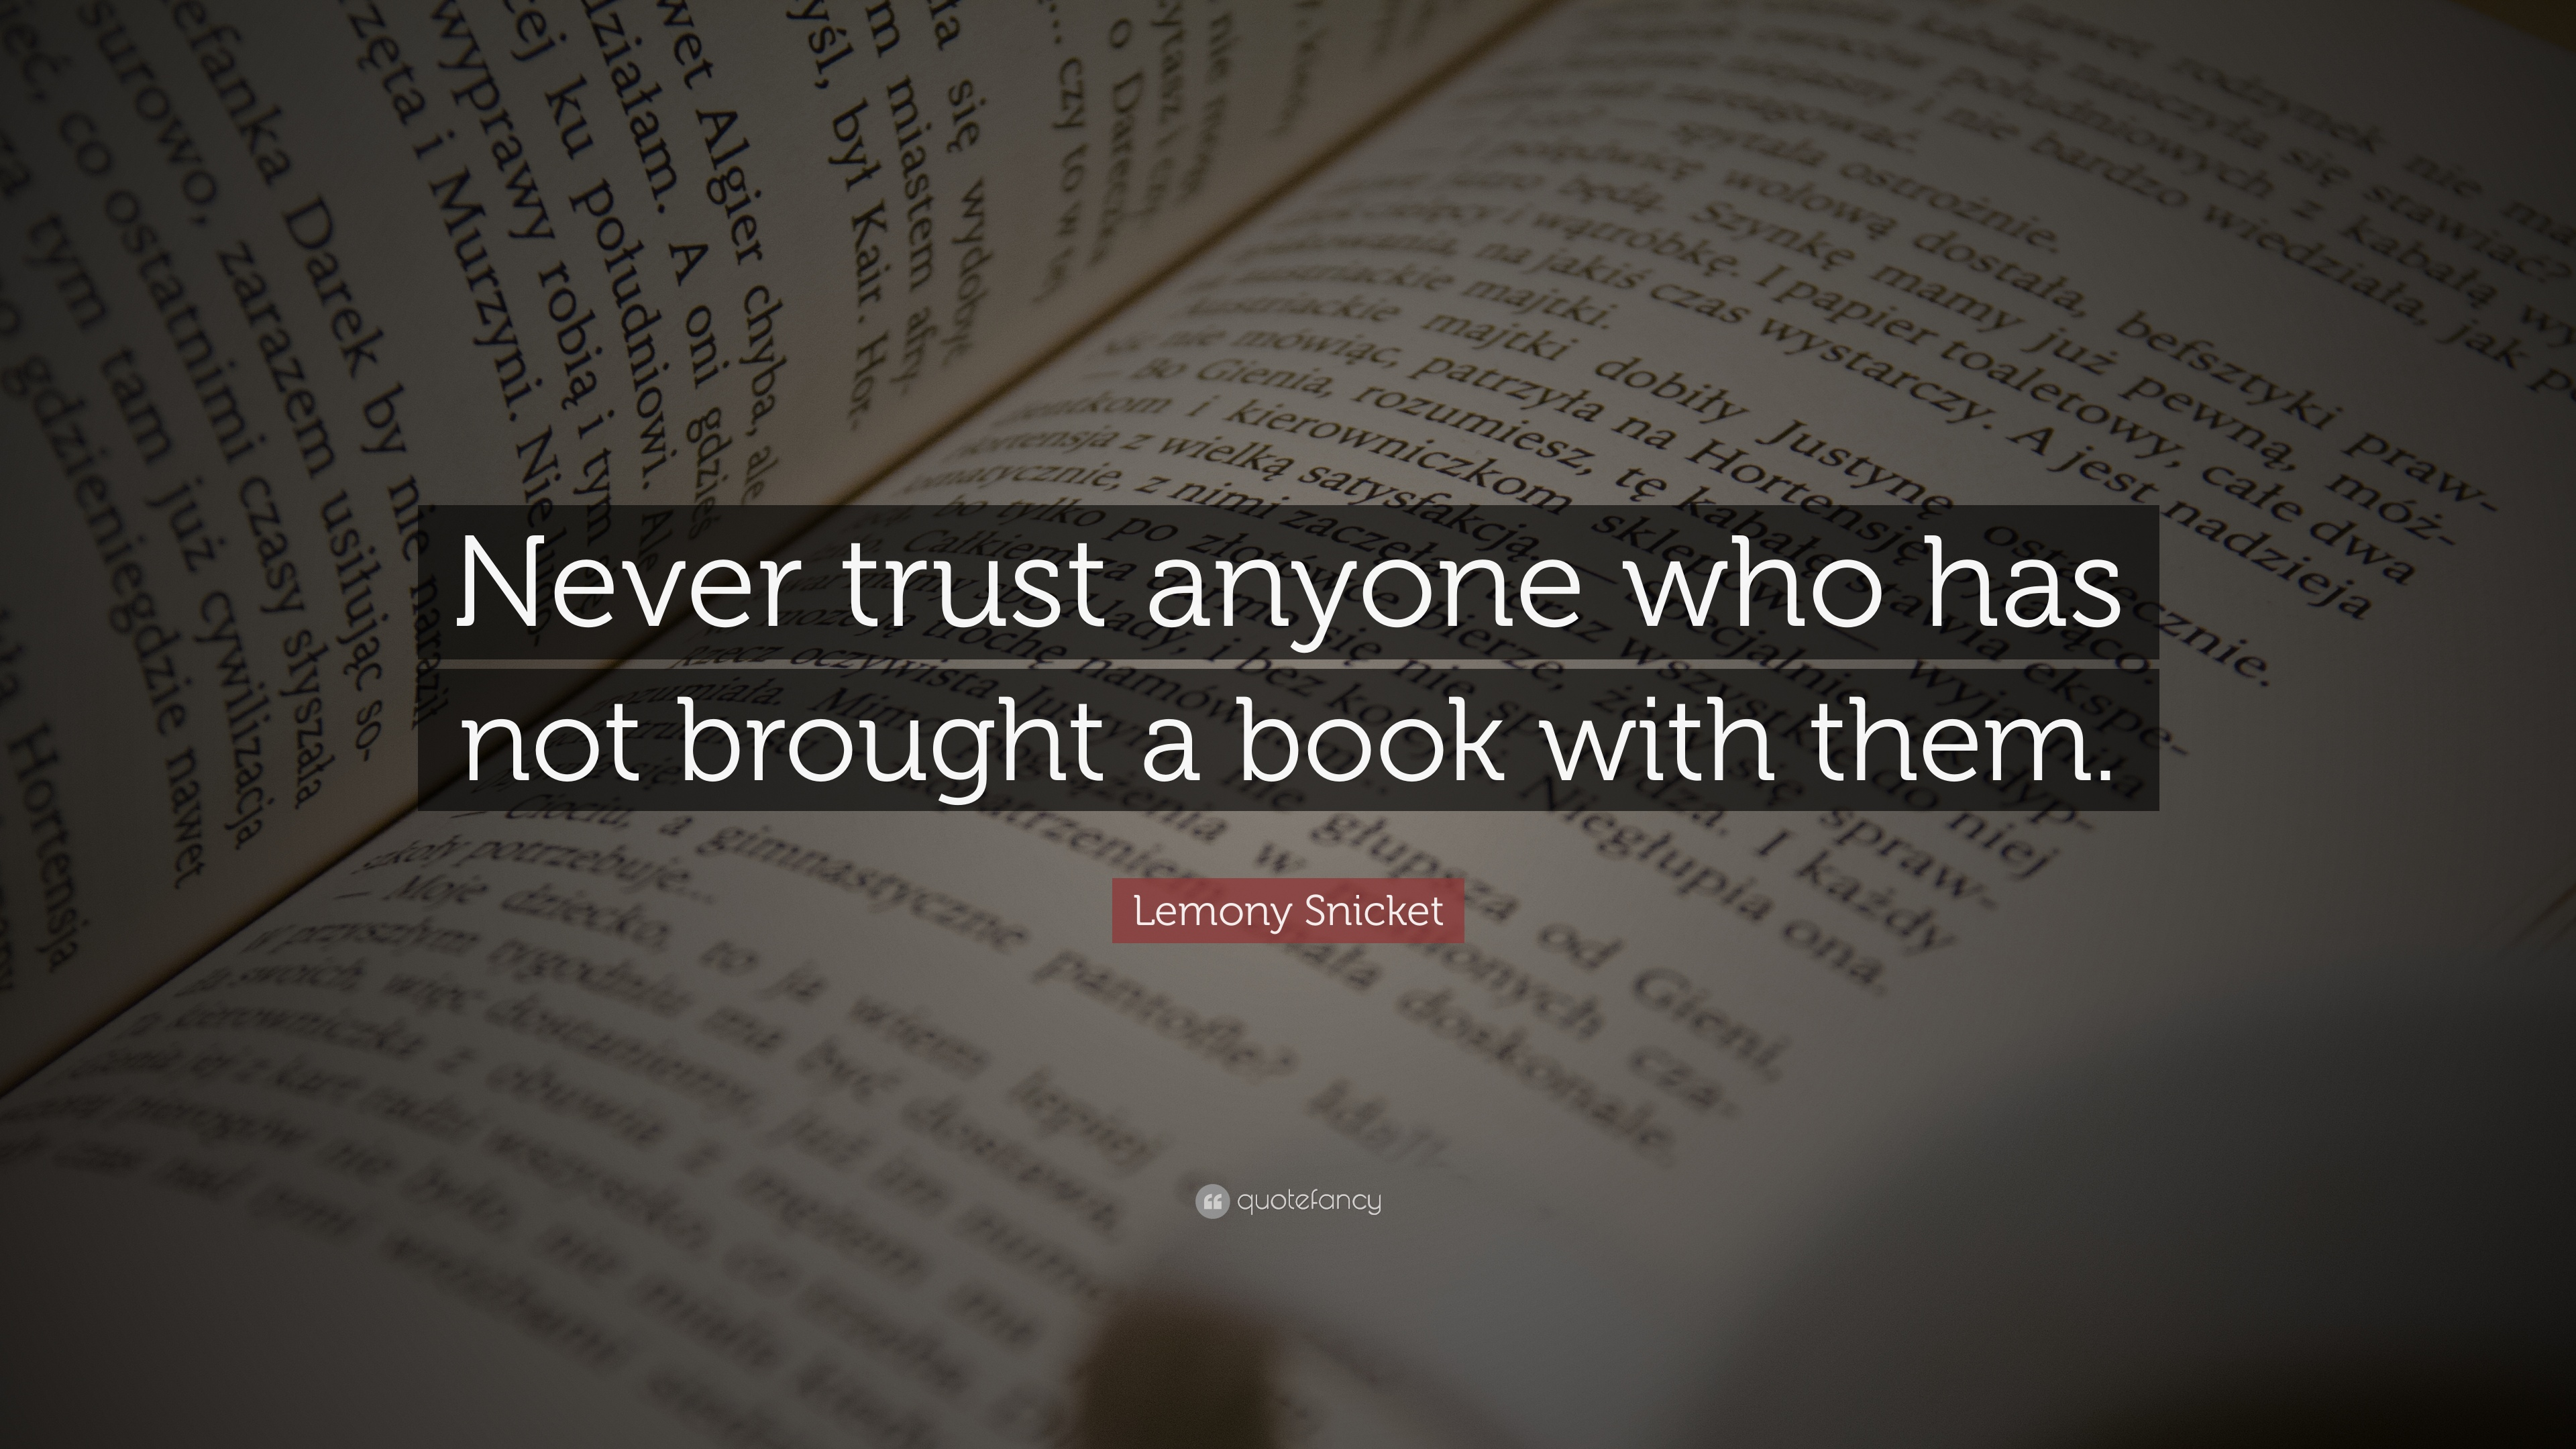 5902-Lemony-Snicket-Quote-Never-trust-anyone-who-has-not-brought-a-book